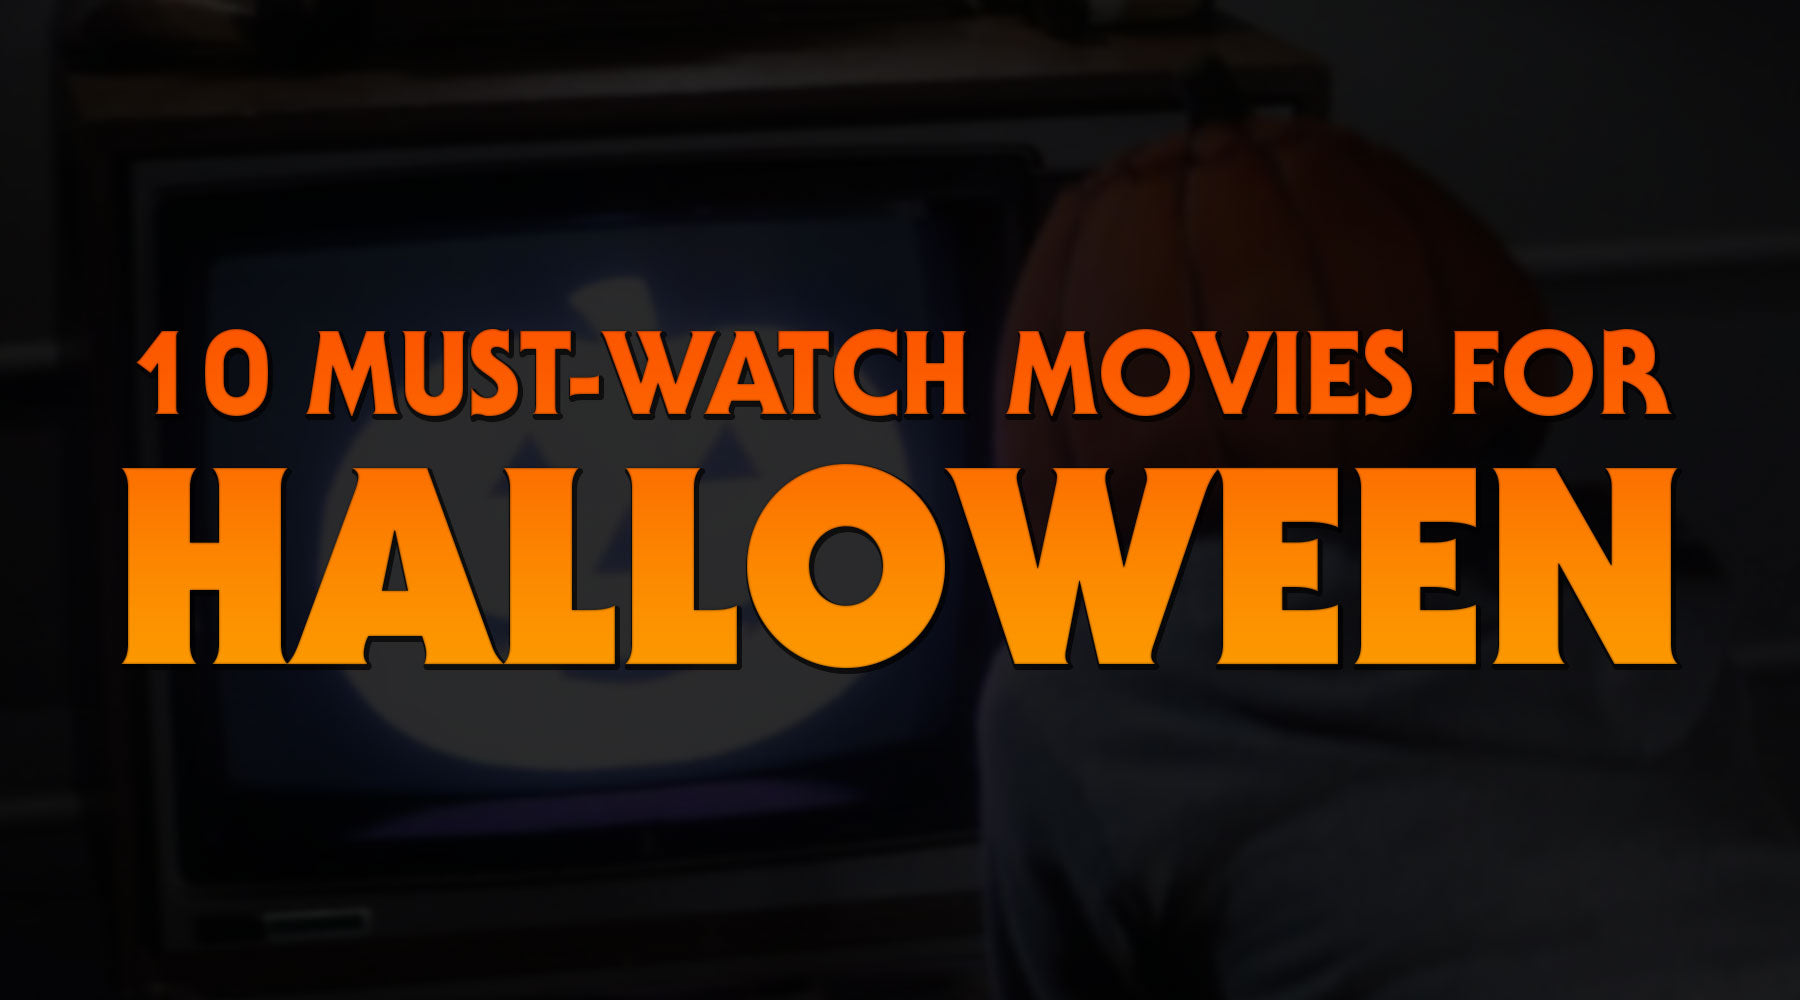 10 Must-Watch Halloween Movies for the Time-Crunched Terrorphile